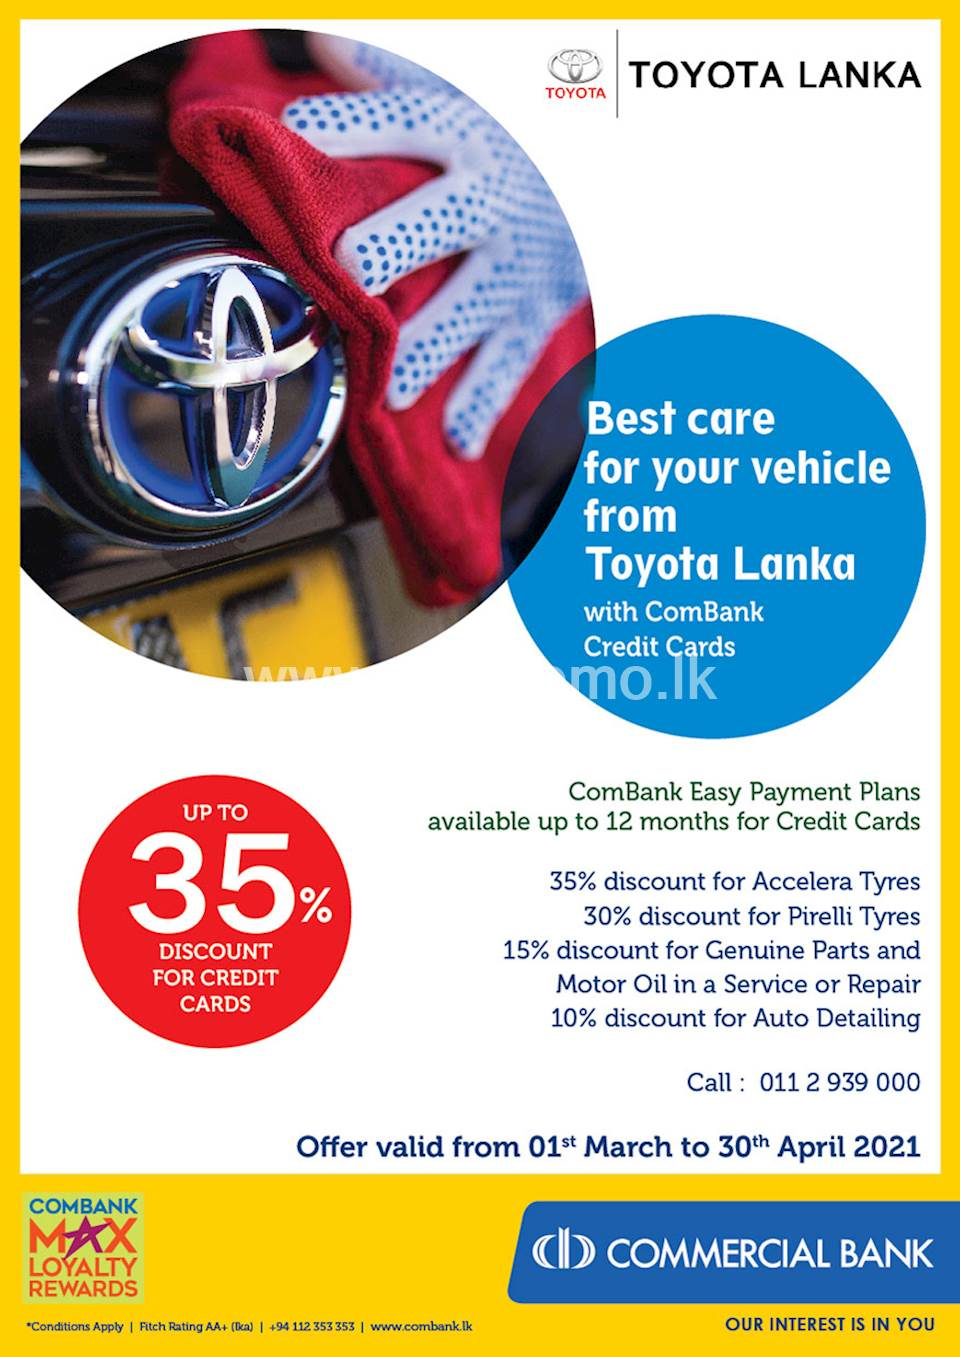 Best care for your vehicle from Toyota Lanka with ComBank Credit Cards